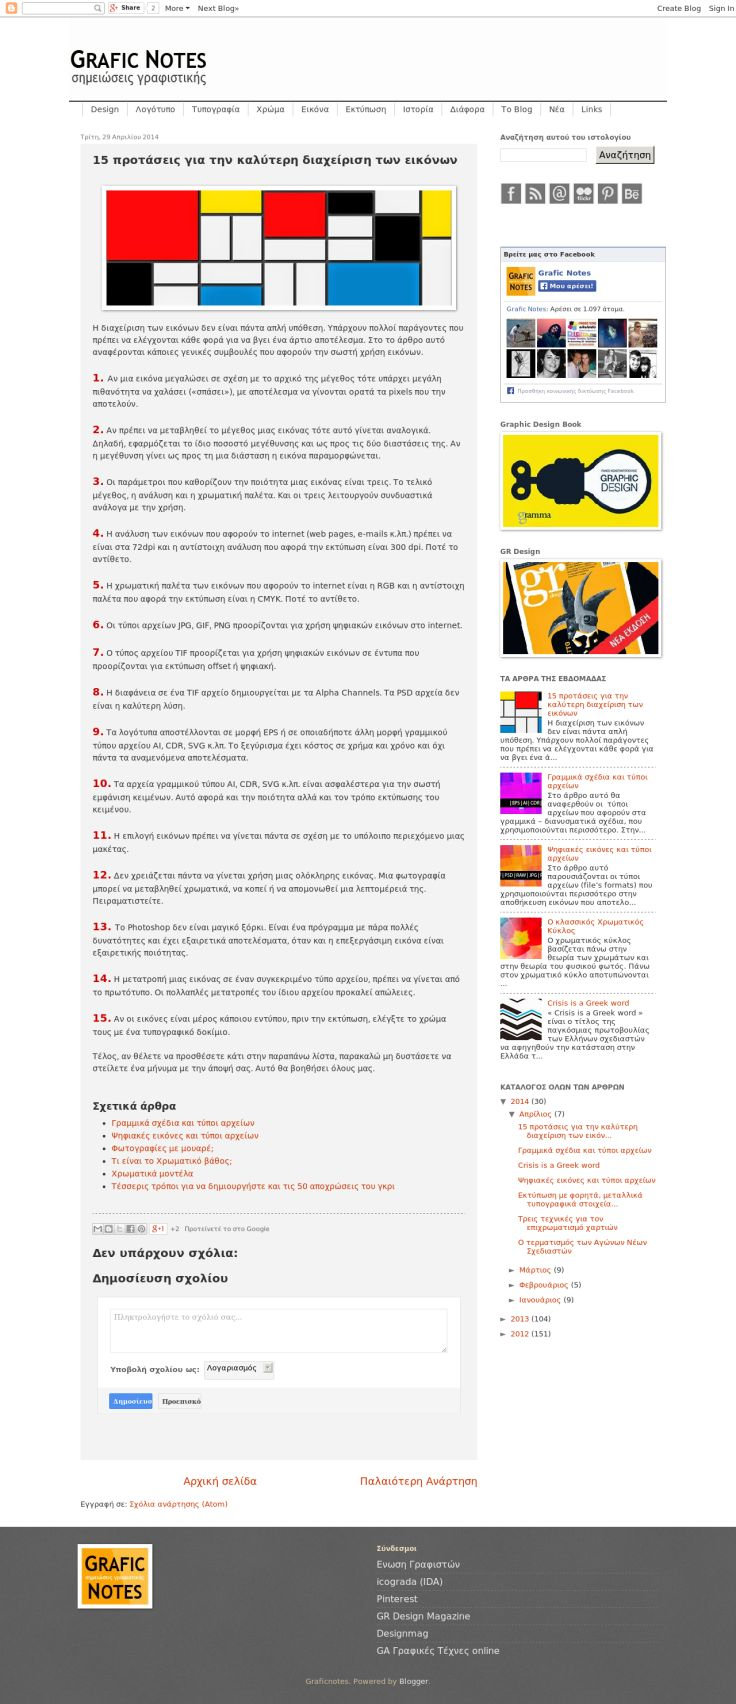 Website'http%3A%2F%2Fgraficnotes.blogspot.gr%2F2014%2F04%2F15.html' snapped on Page2images!